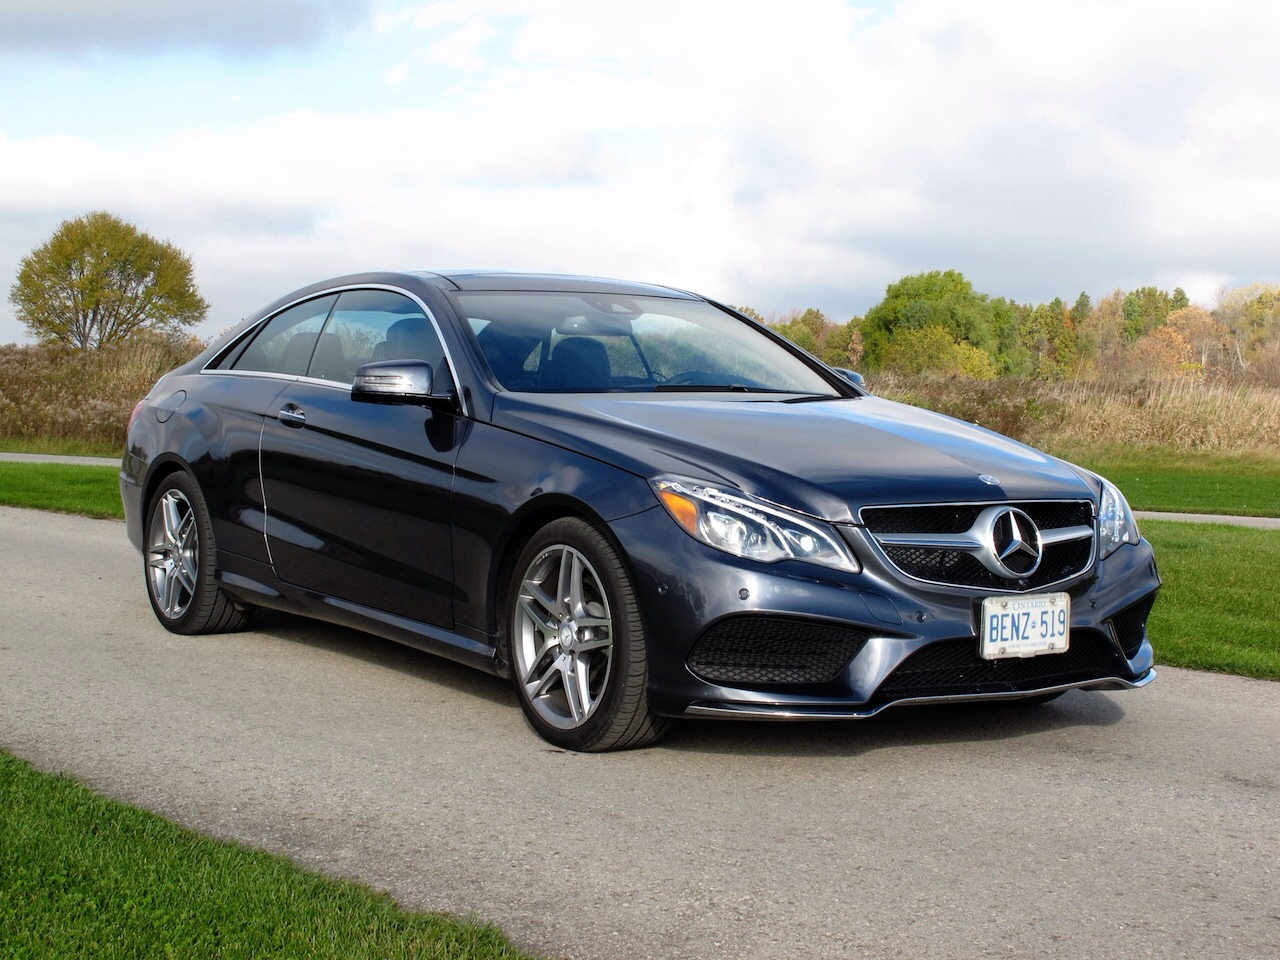 2014 mercedes benz e350 coupe photos cars photos test drives and reviews canadian auto review. Black Bedroom Furniture Sets. Home Design Ideas